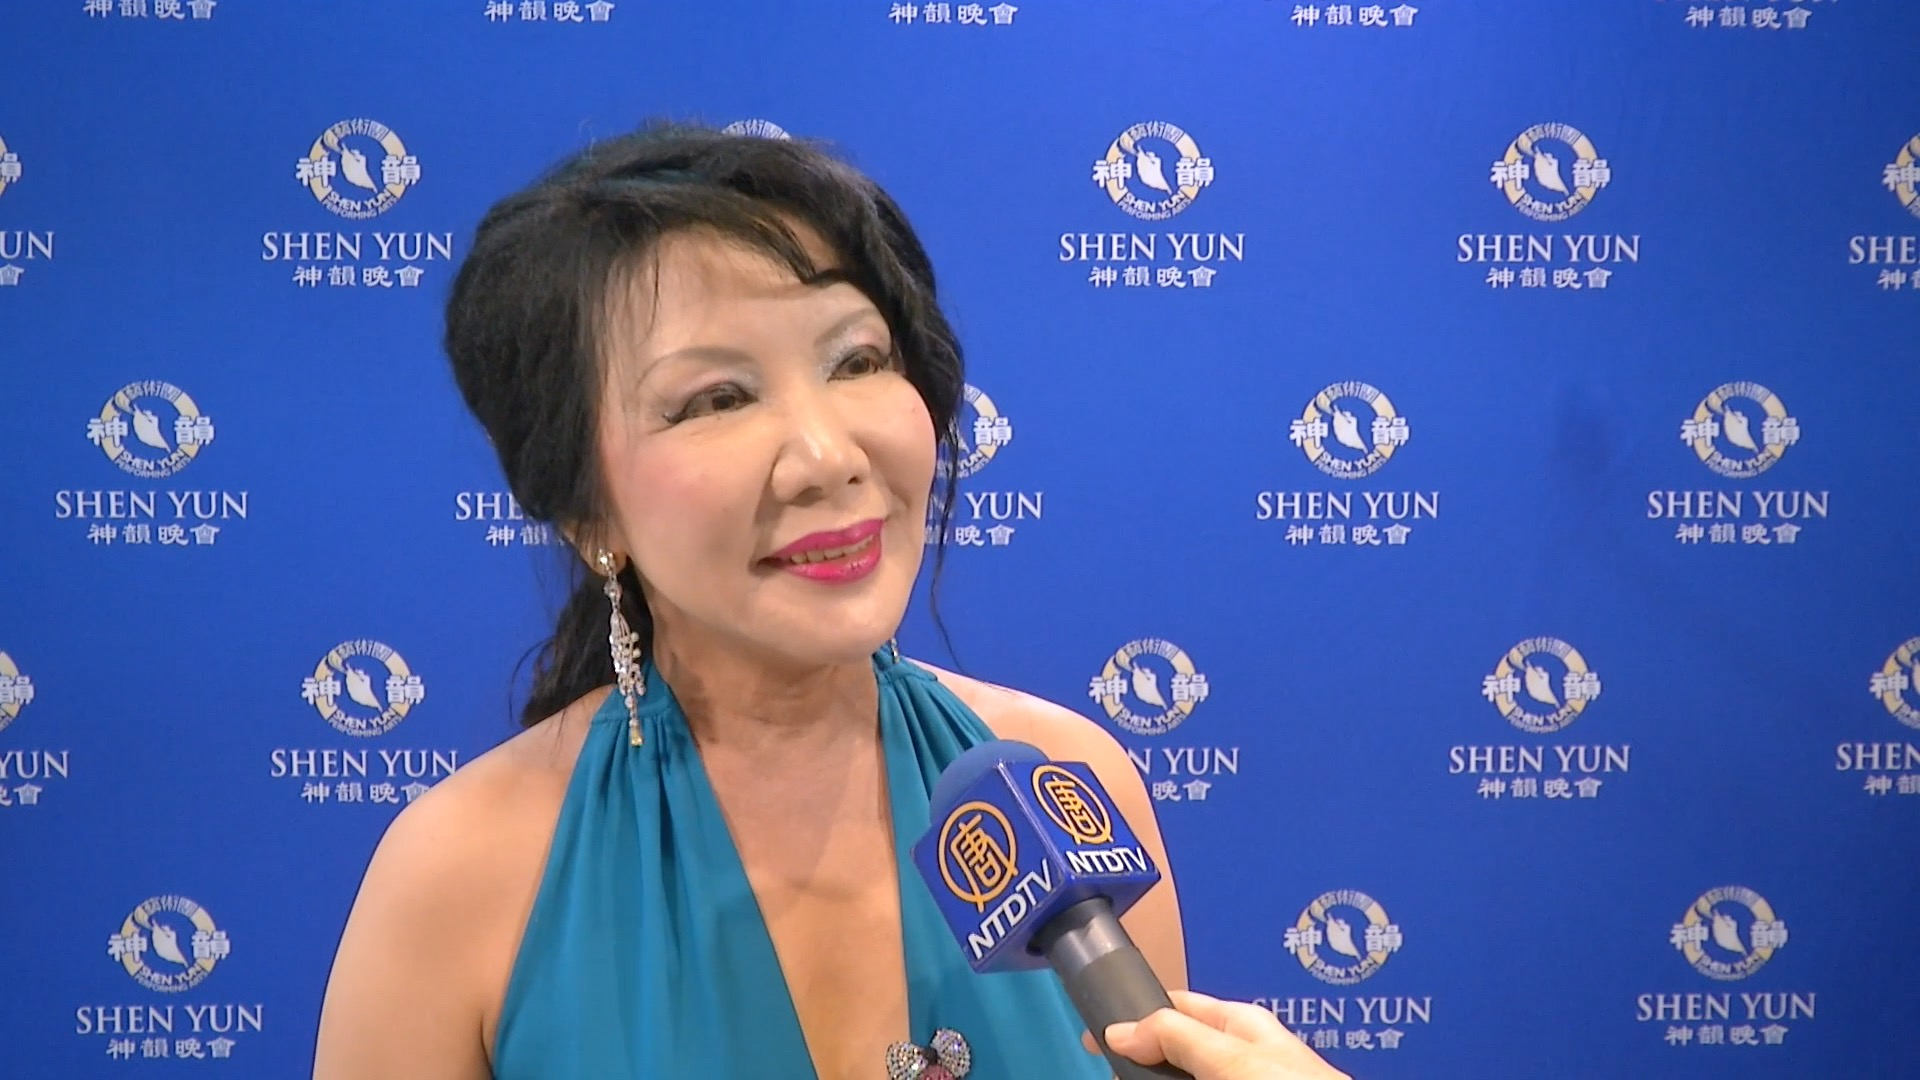 Shen Yun Symphony Orchestra's Stunning Performance Brings National Pride to the People of Hsinchu